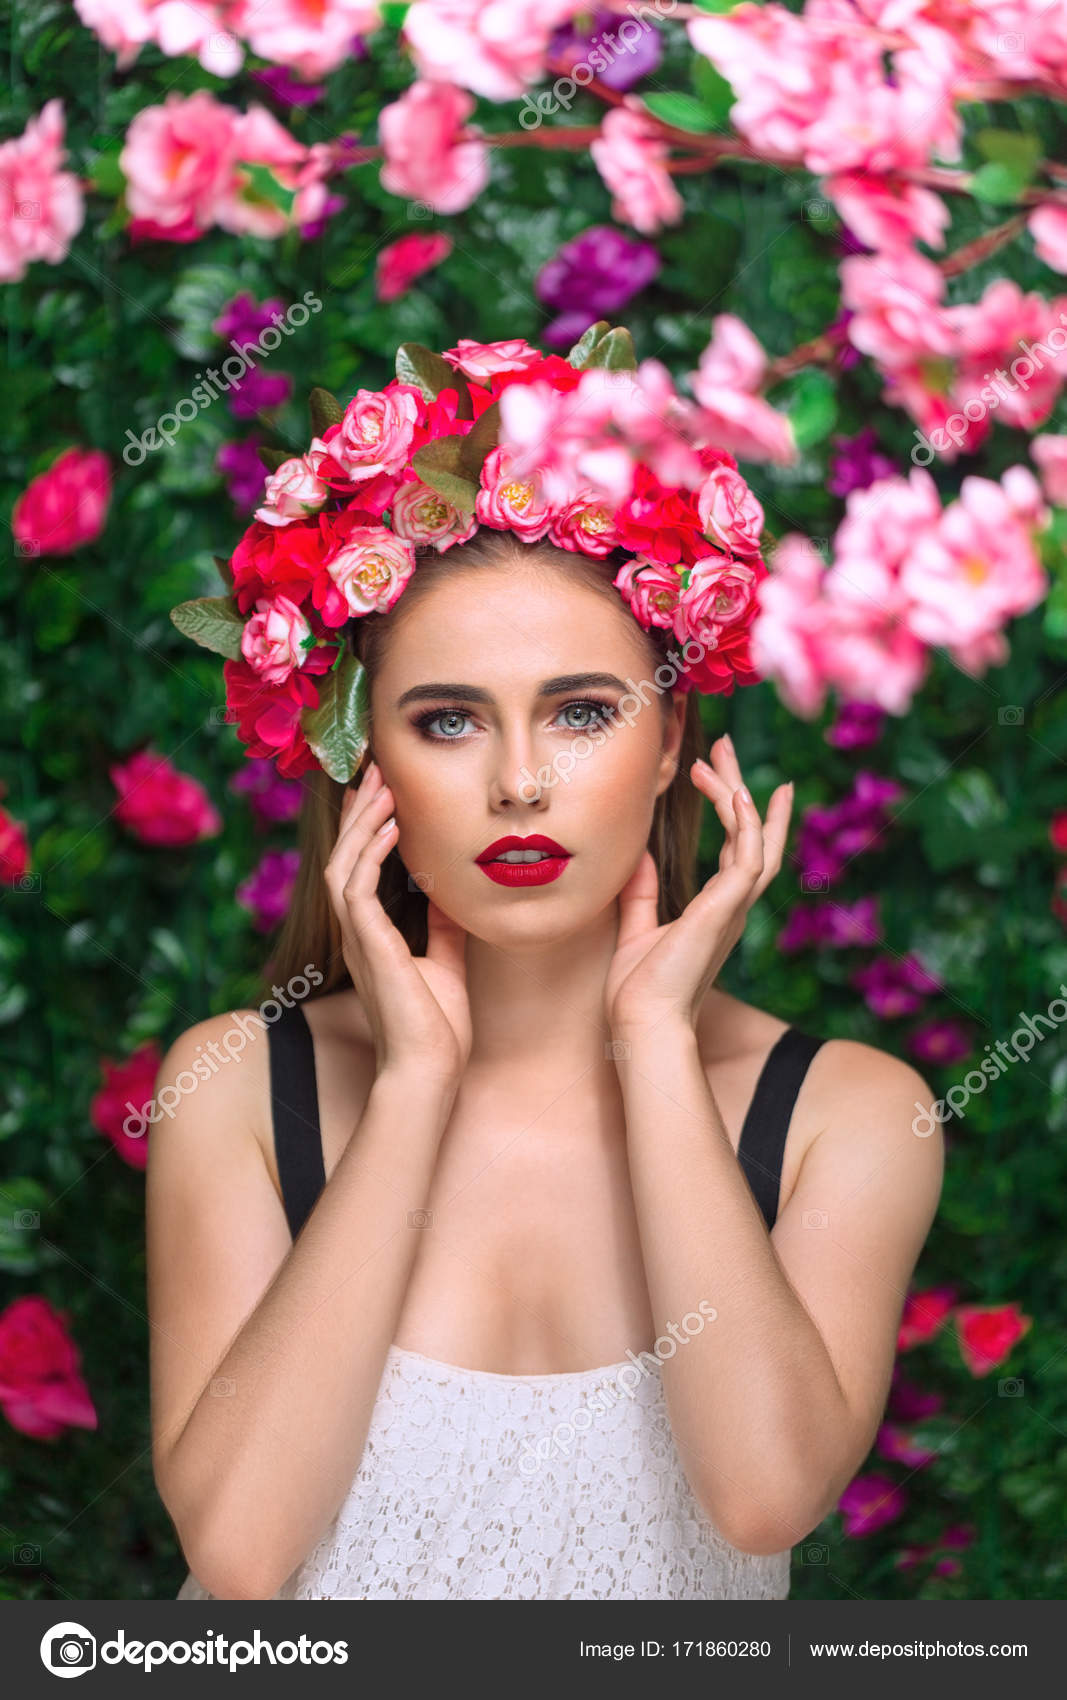 Beautiful woman with flowers stock photo avesun 171860280 beautiful woman with flowers stock photo izmirmasajfo